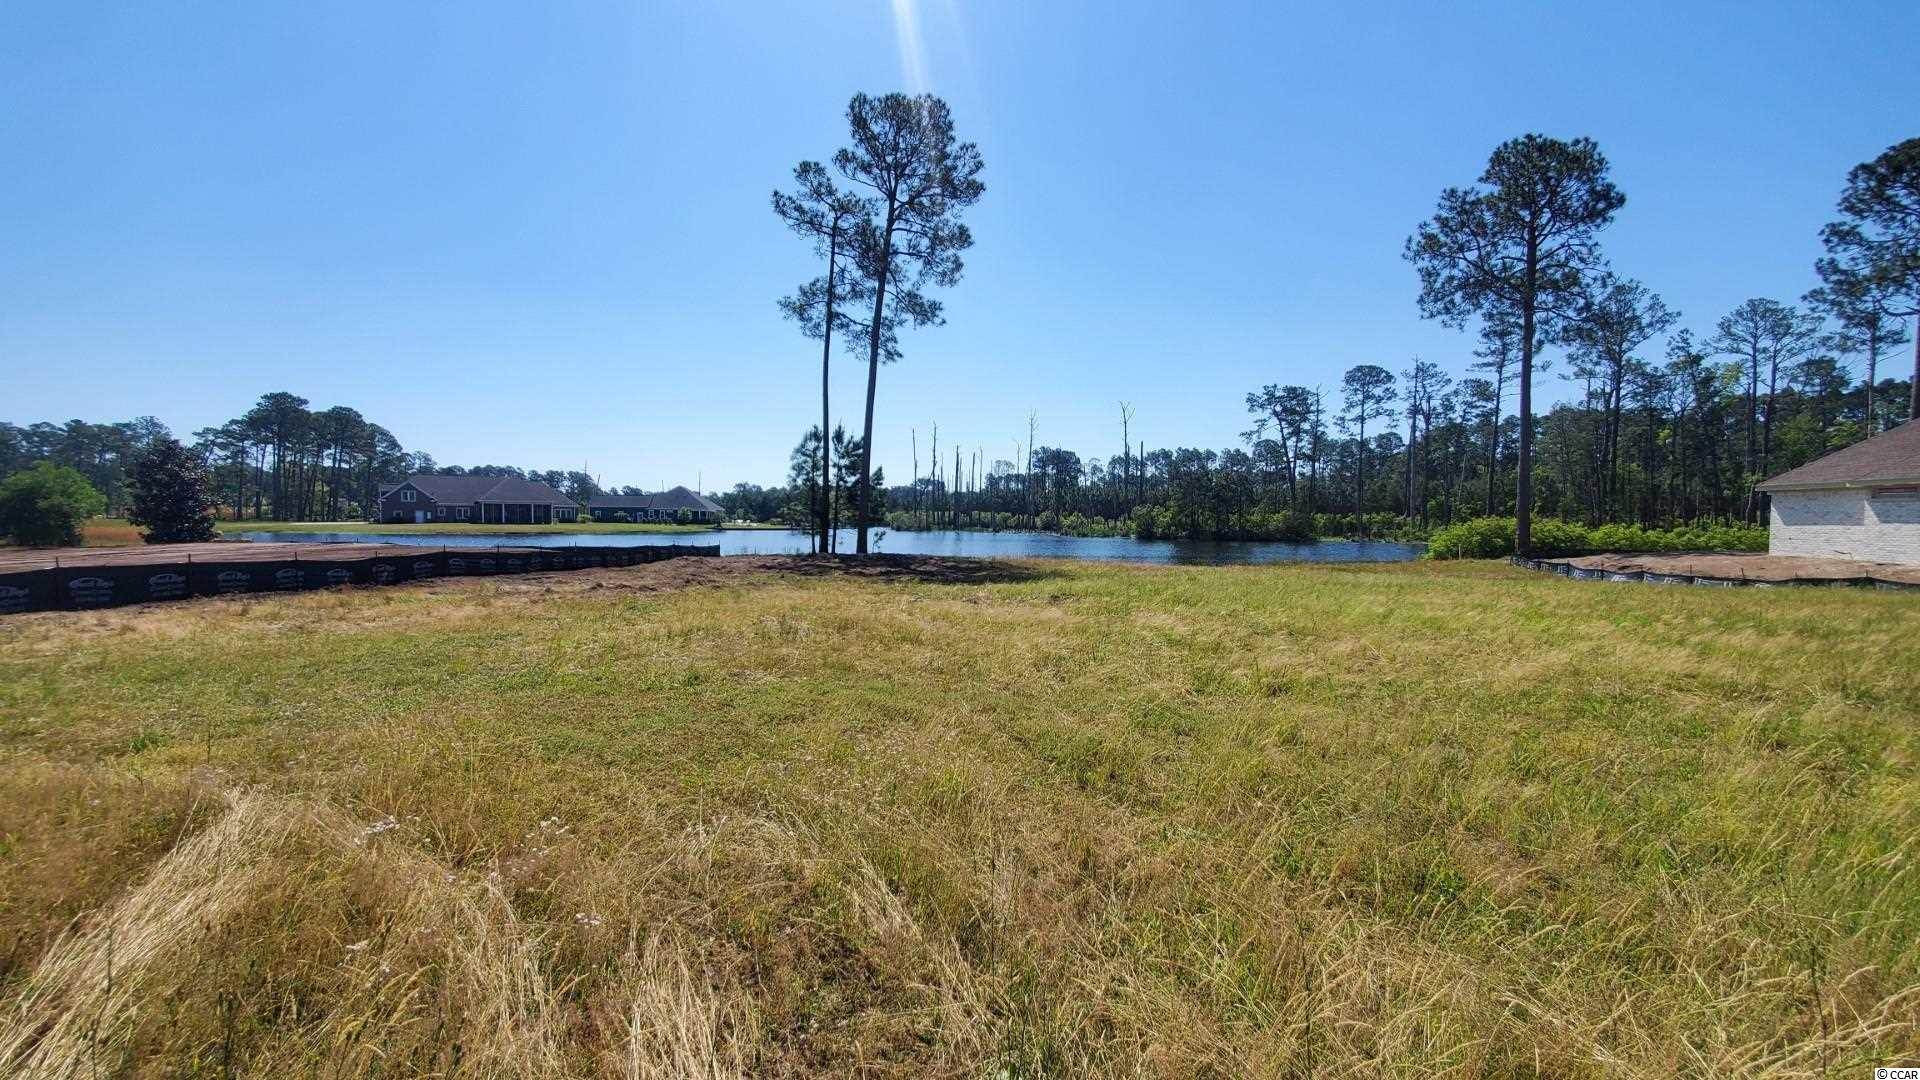 *Ready to build* Build your dream home on this beautiful lake front lot in Wild Wing Plantation! Golf course view and water front! Amenities include a pool, tennis courts and basketball courts. Wild Wing Plantation is surrounded by a championship golf course, close to 501, restaurants, a great college and just a short distance to the hospital. Measurements are approximate and not guaranteed. Buyer responsible for verification.